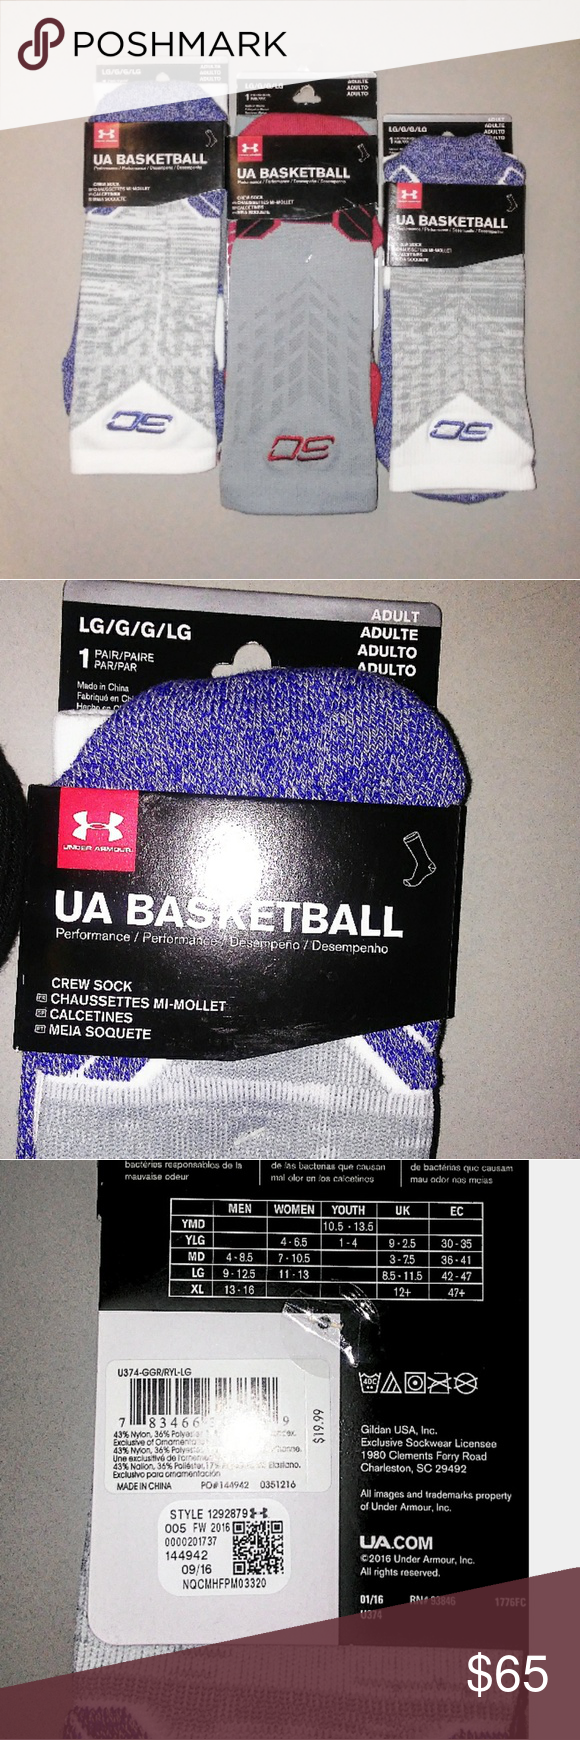 7049512bb2dd Men s UA B-ball SC  Crew Socks (Lot of 4)  Men s Under Armour Basketball  Socks Steph Curry Edition (Lot of 4) Type  Crew socks Size  Large Fit   9-12.5 men ...